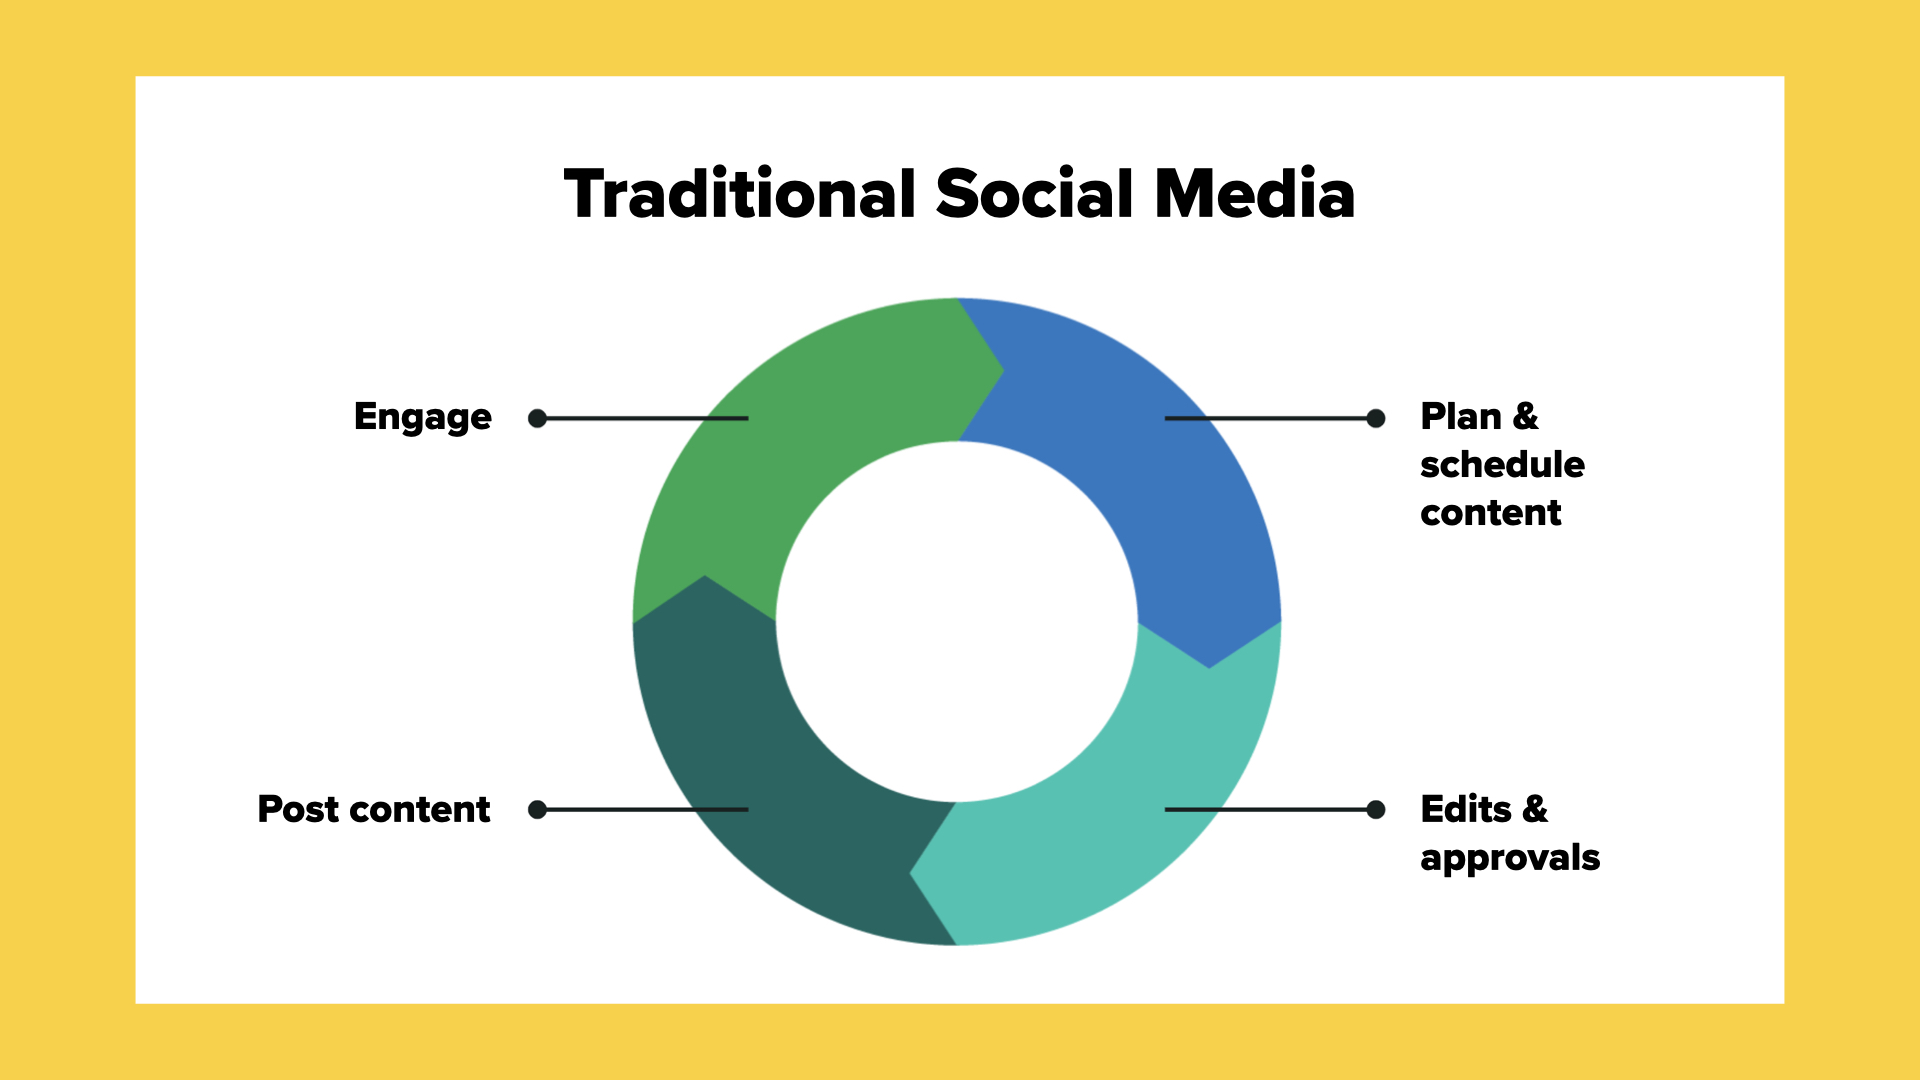 Cycle arrow diagram showing traditional social media is to: plan & schedule content, edit & seek approval, post content, engage